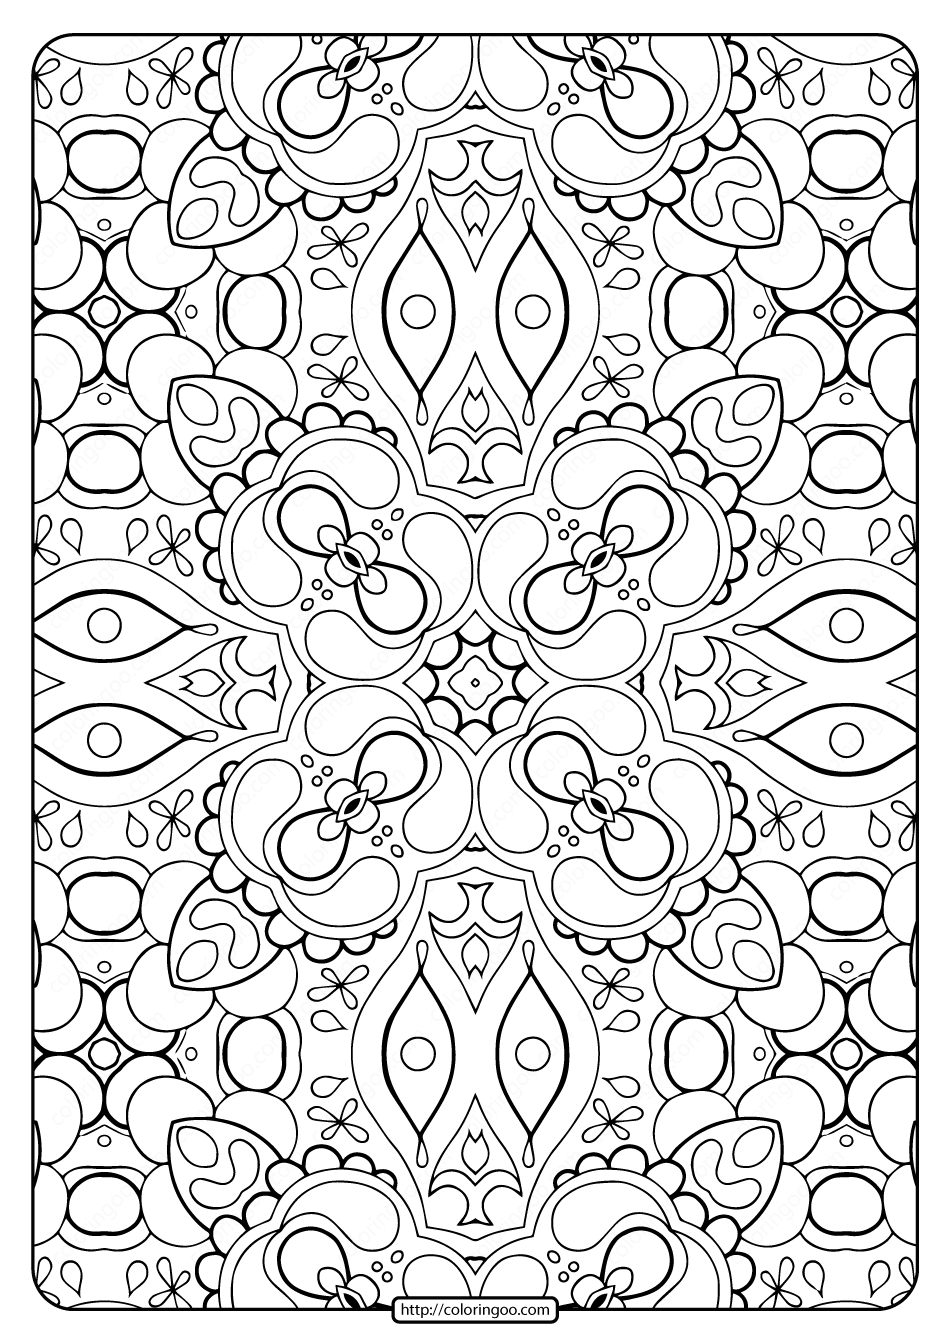 painting coloring pages 40 free printable coloring pages for kids pages painting coloring